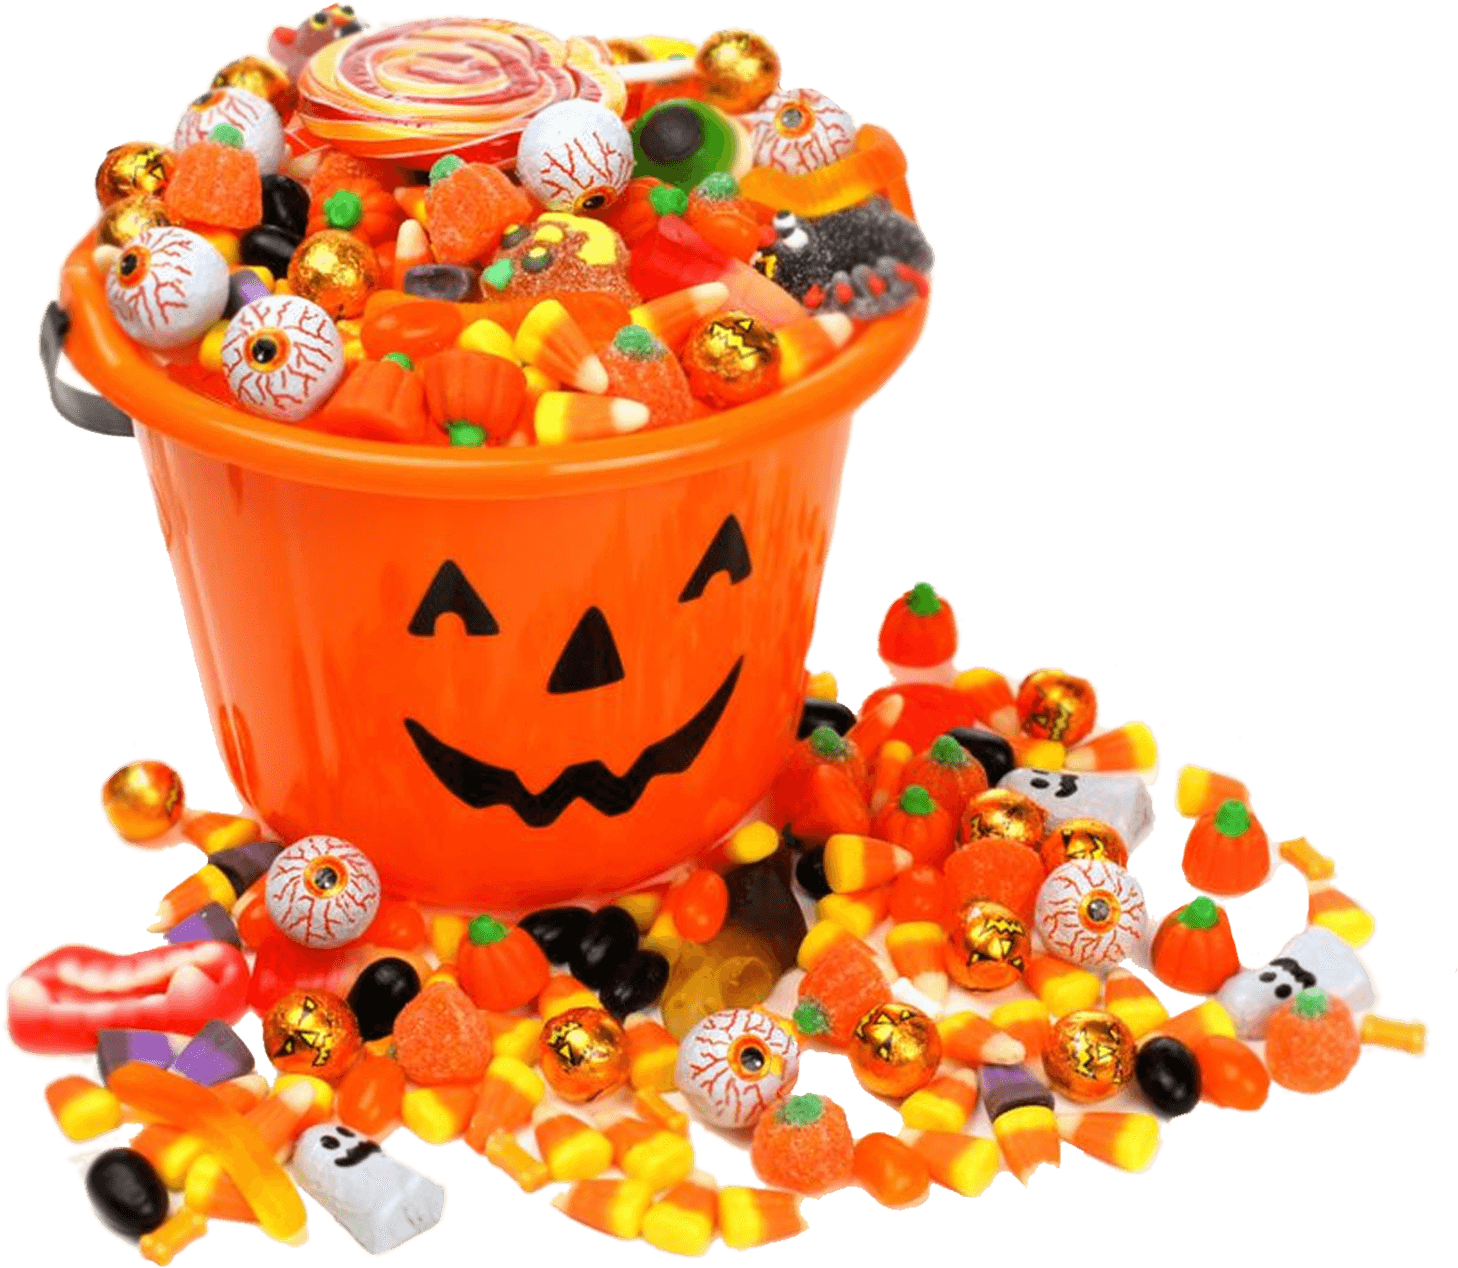 Find Hd Free Candies Halloween Transparent Png Halloween Candy Transparent Download It Free For Personal Use Halloween Imagenes Variadas